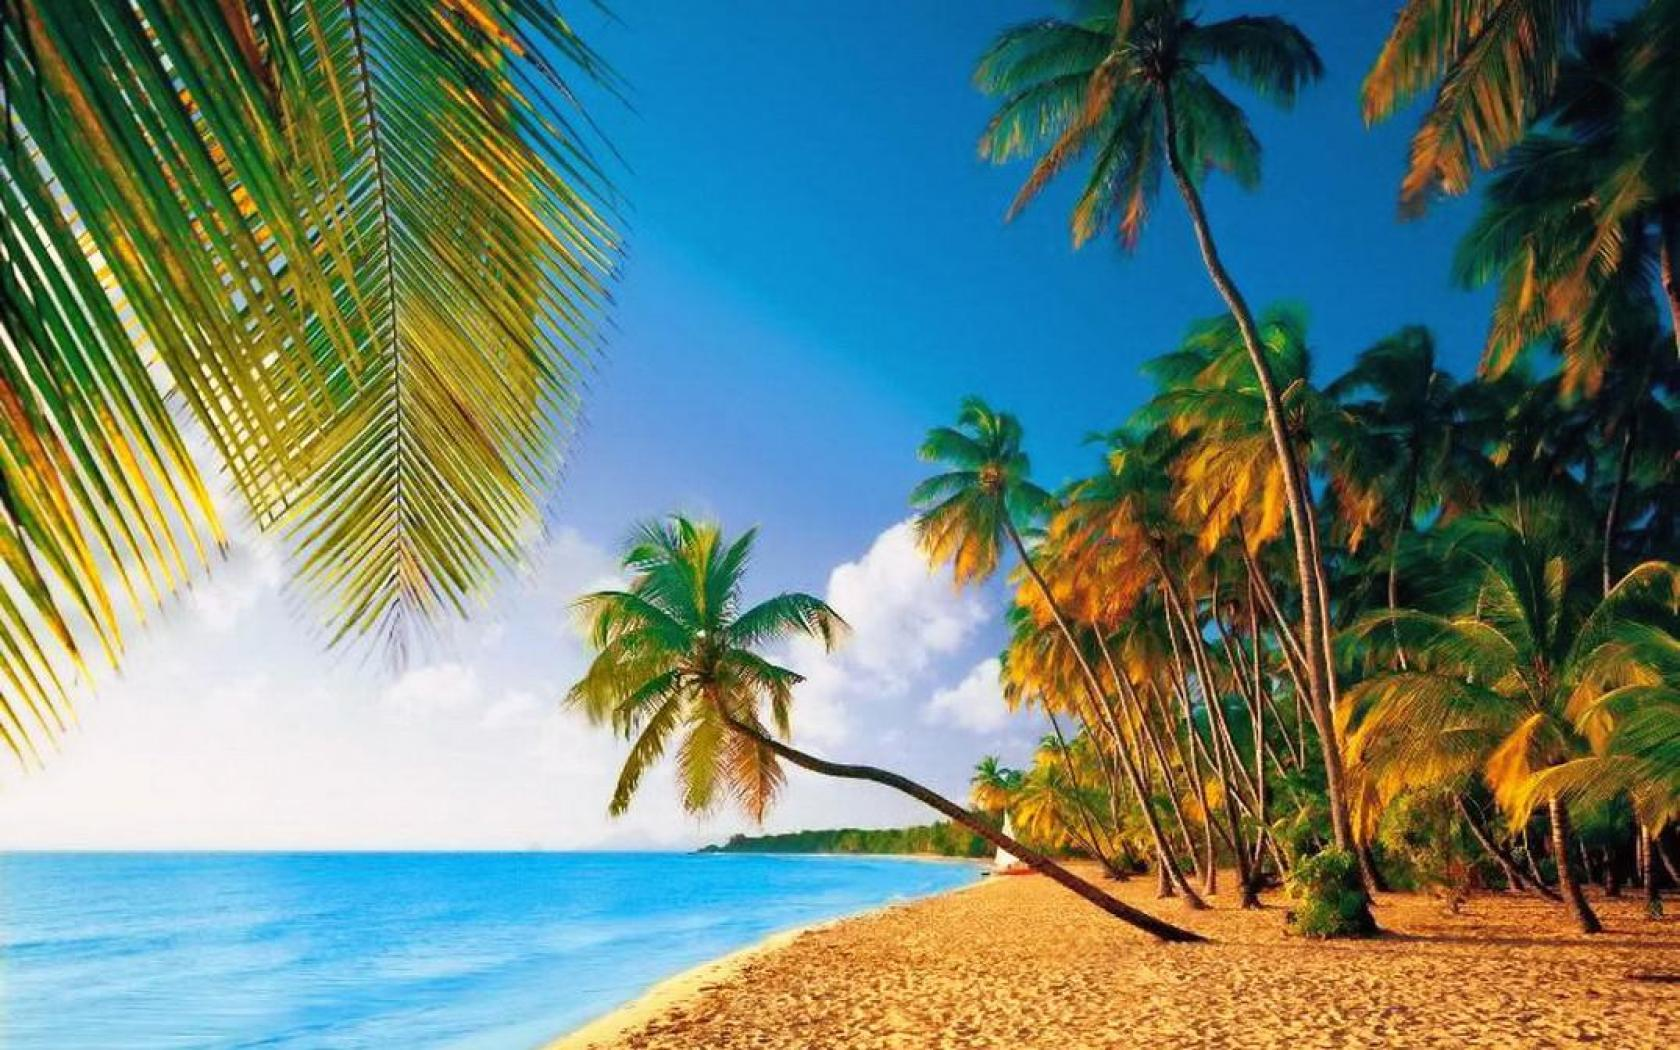 tropical paradise wallpaper - photo #40